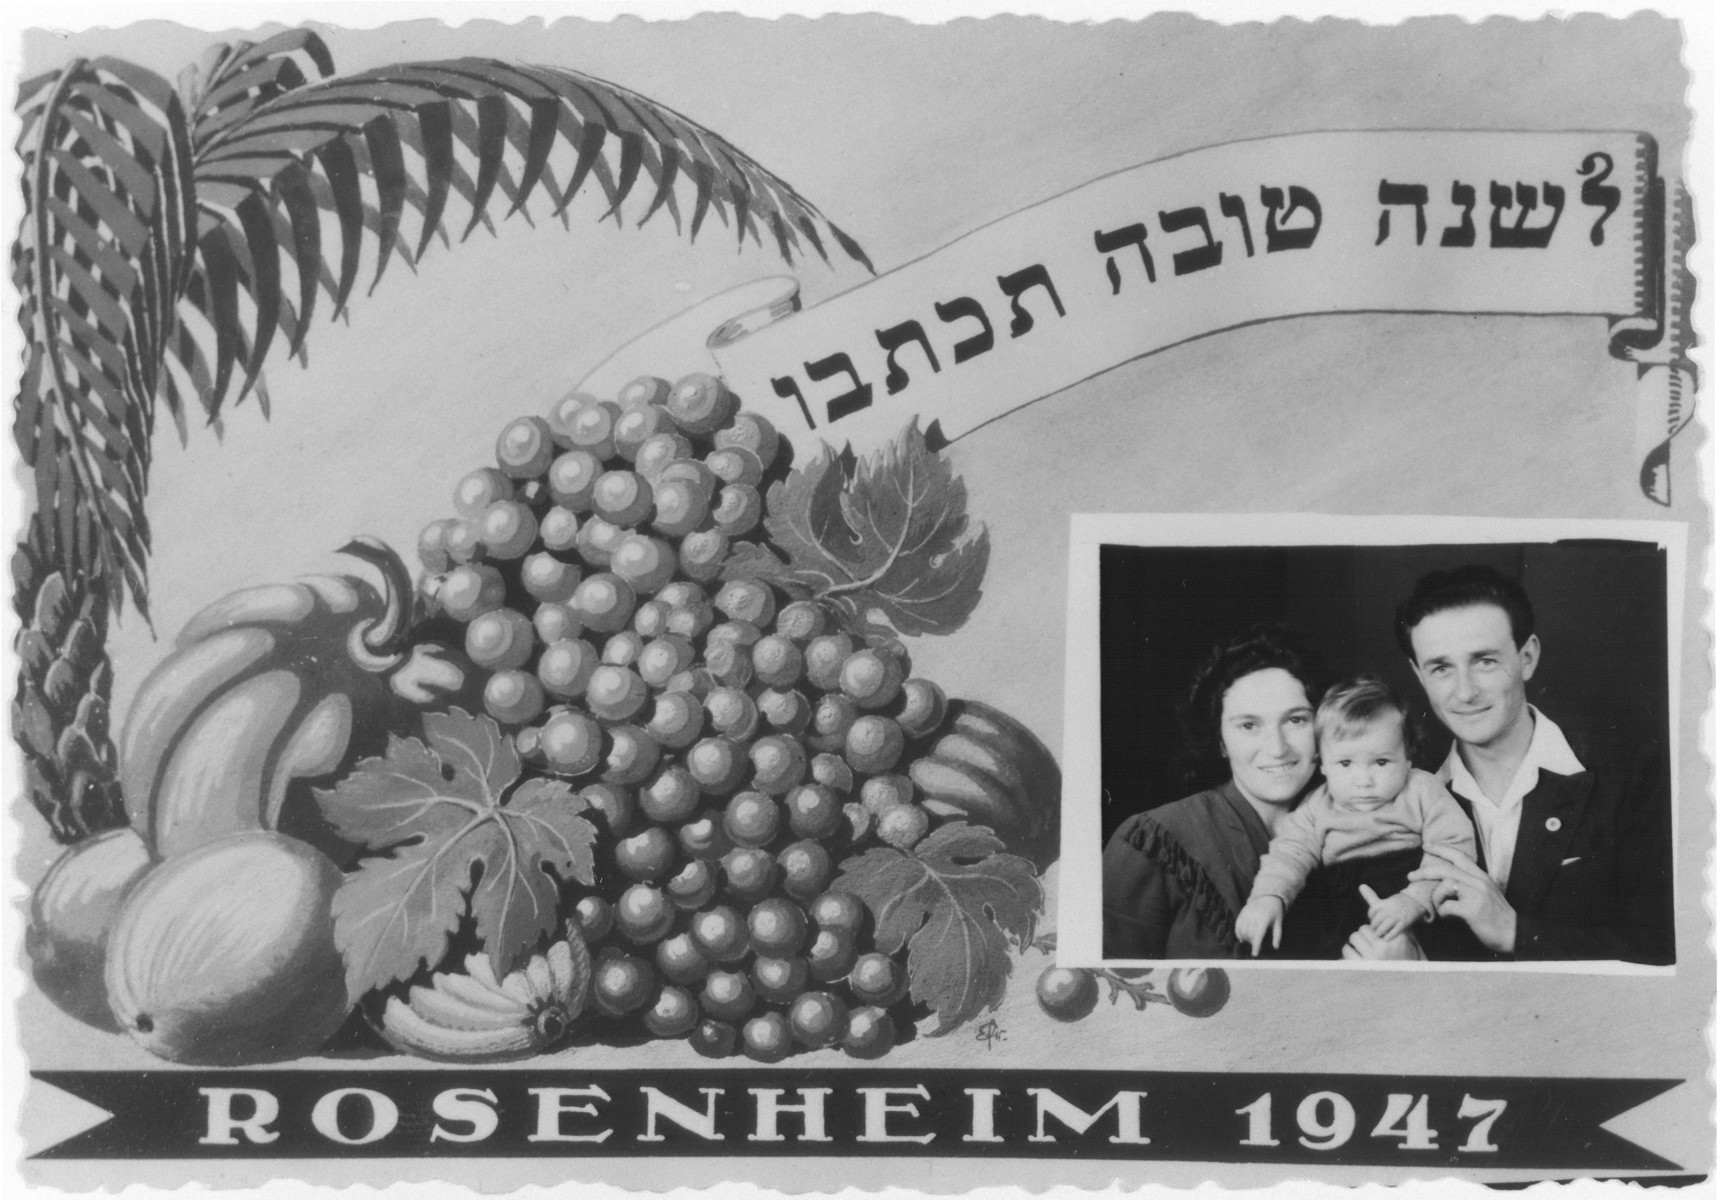 Personalized Jewish New Year's card with a photograph of the Weiss family in the Rosenheim displaced persons camp.